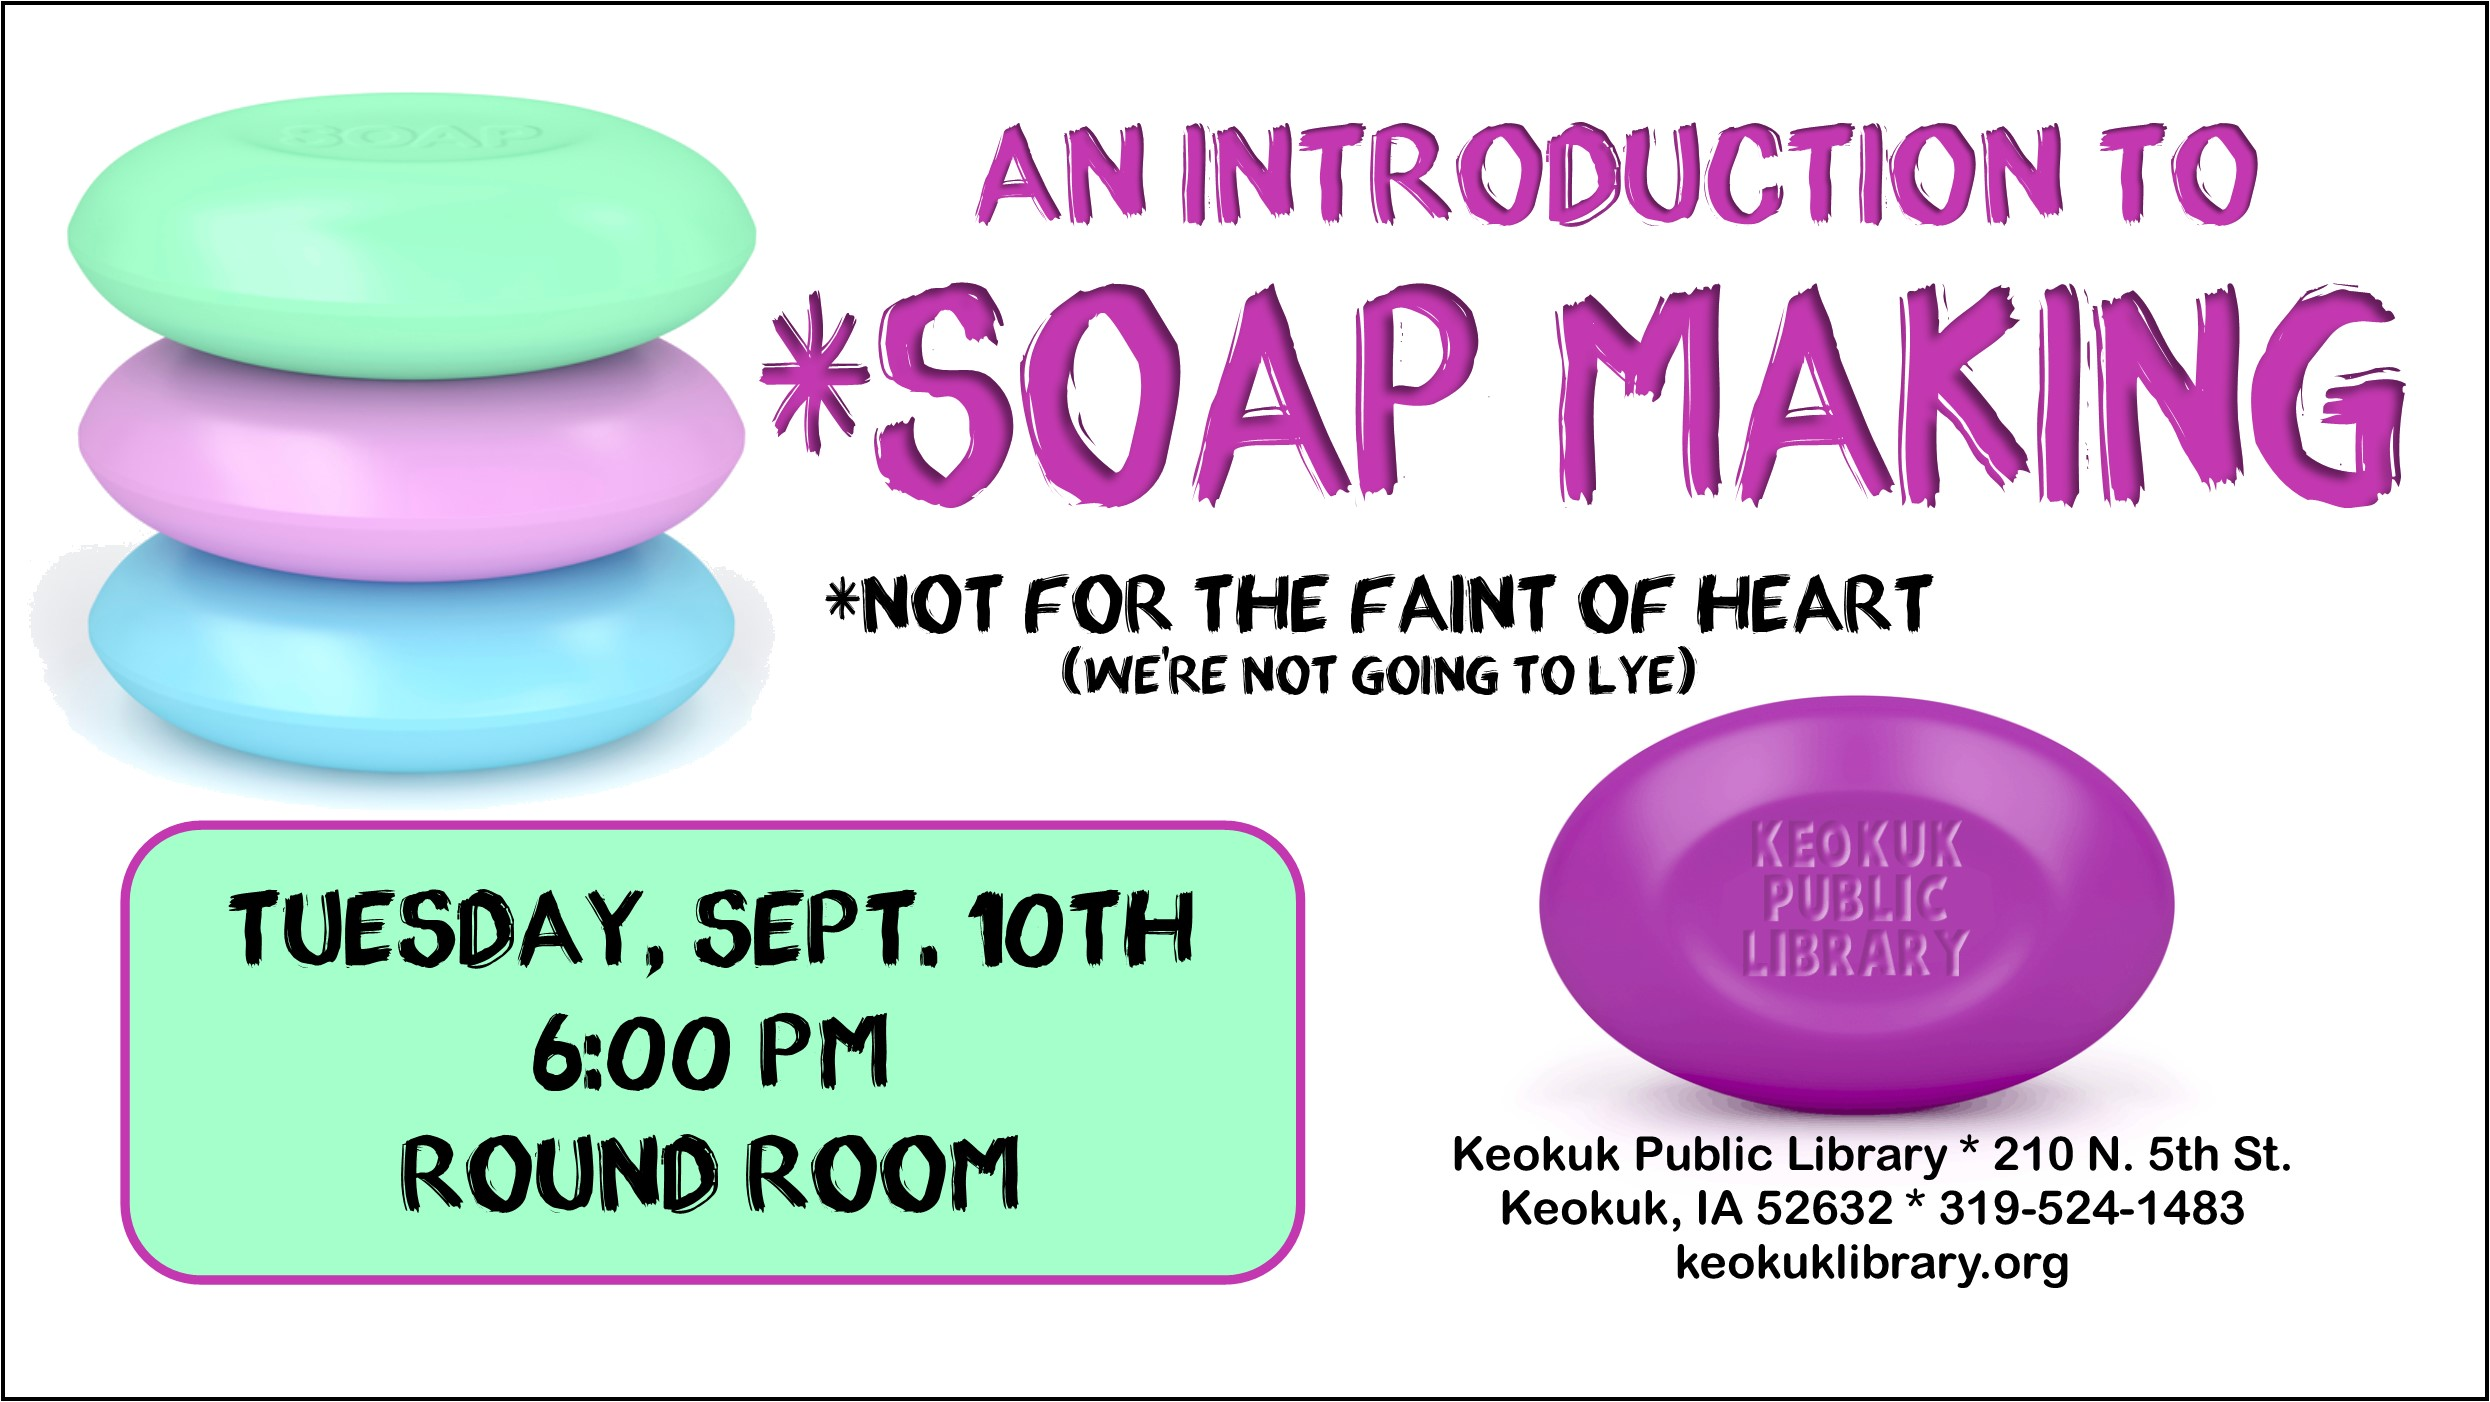 Keokuk Events - Introduction to Soap Making